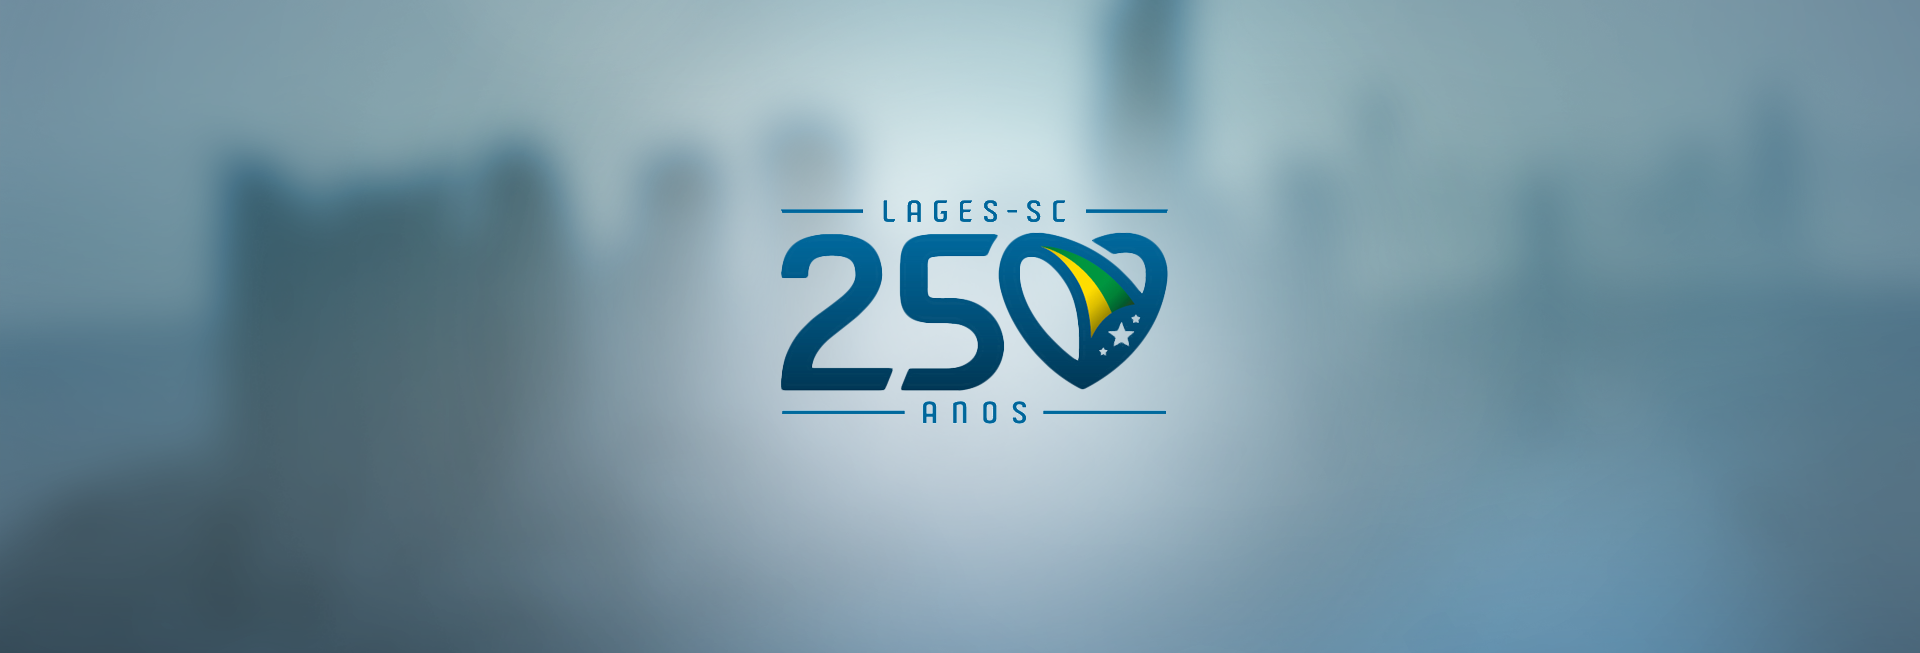 Lages, 250 anos.